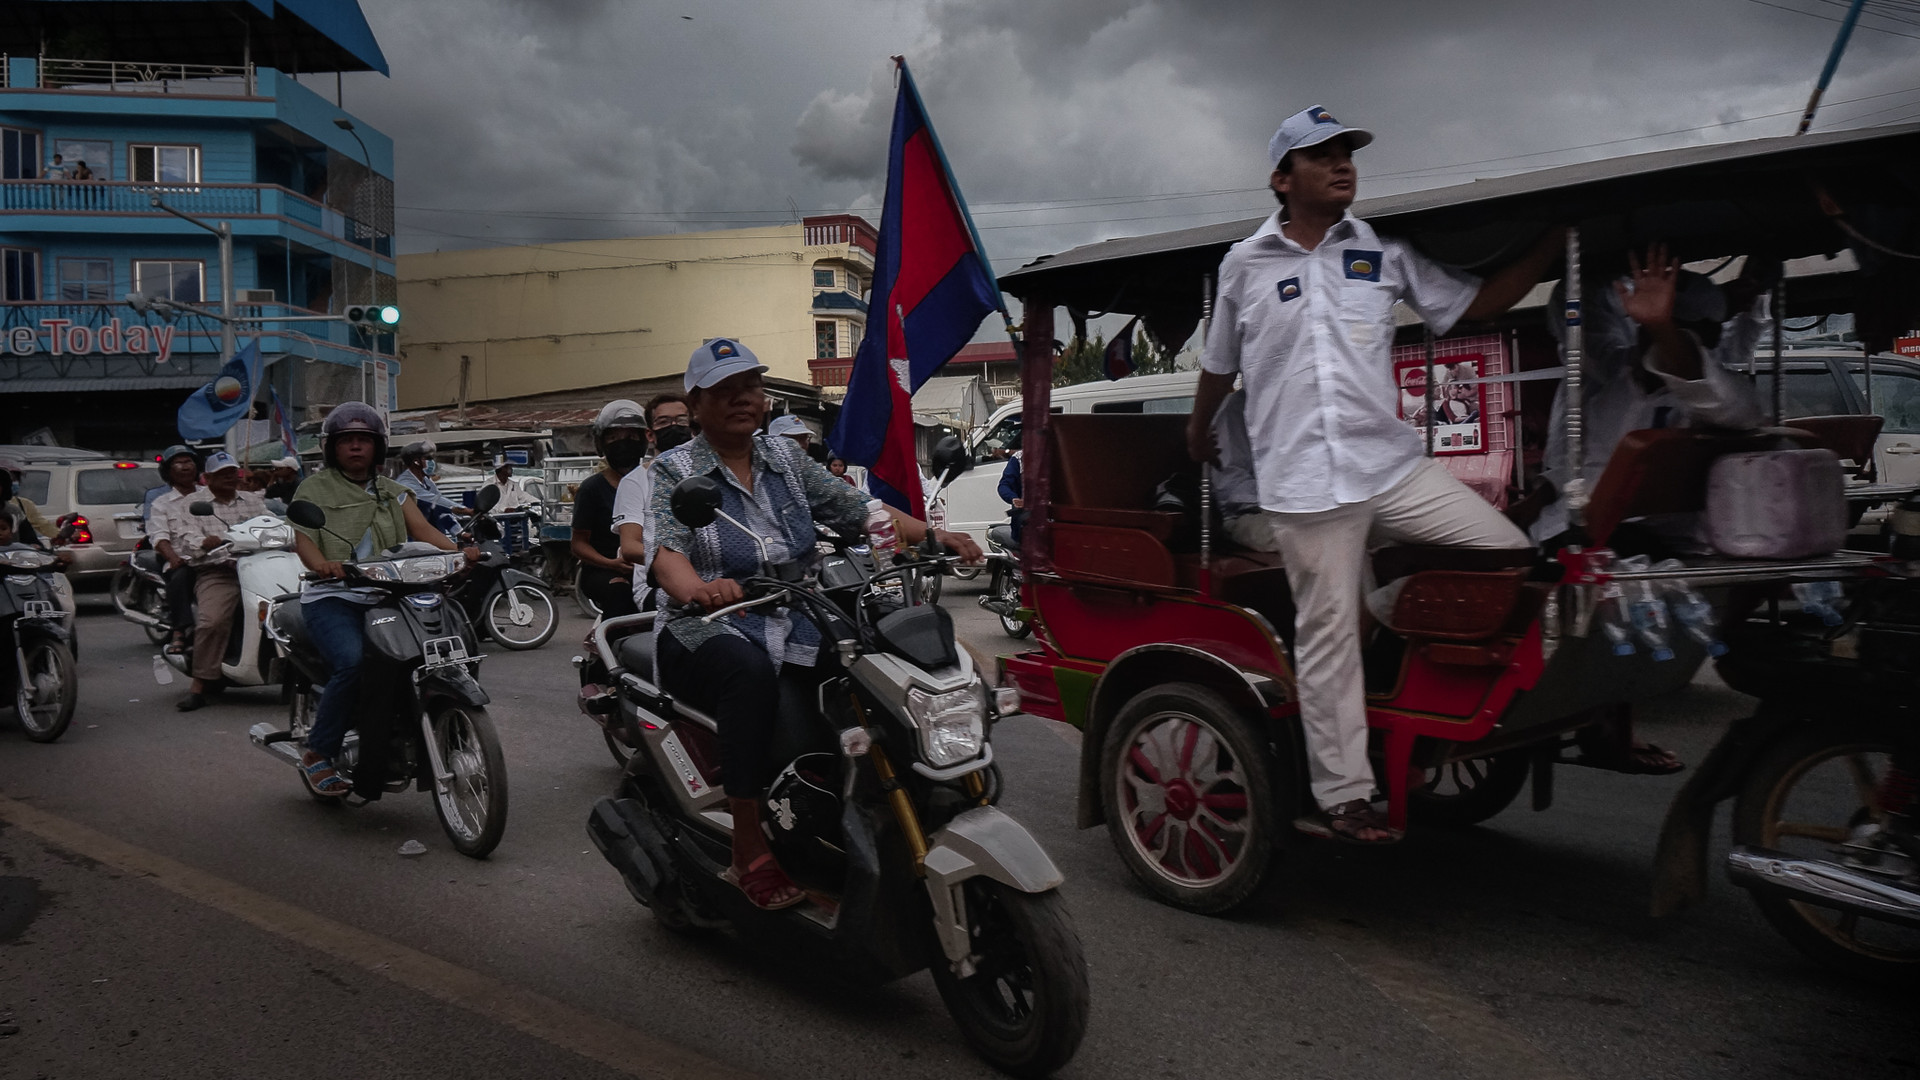 Cambodian commune elections in 2017 resulted in a big win for the ruling party who have been in power for over 30 years. For a personal project